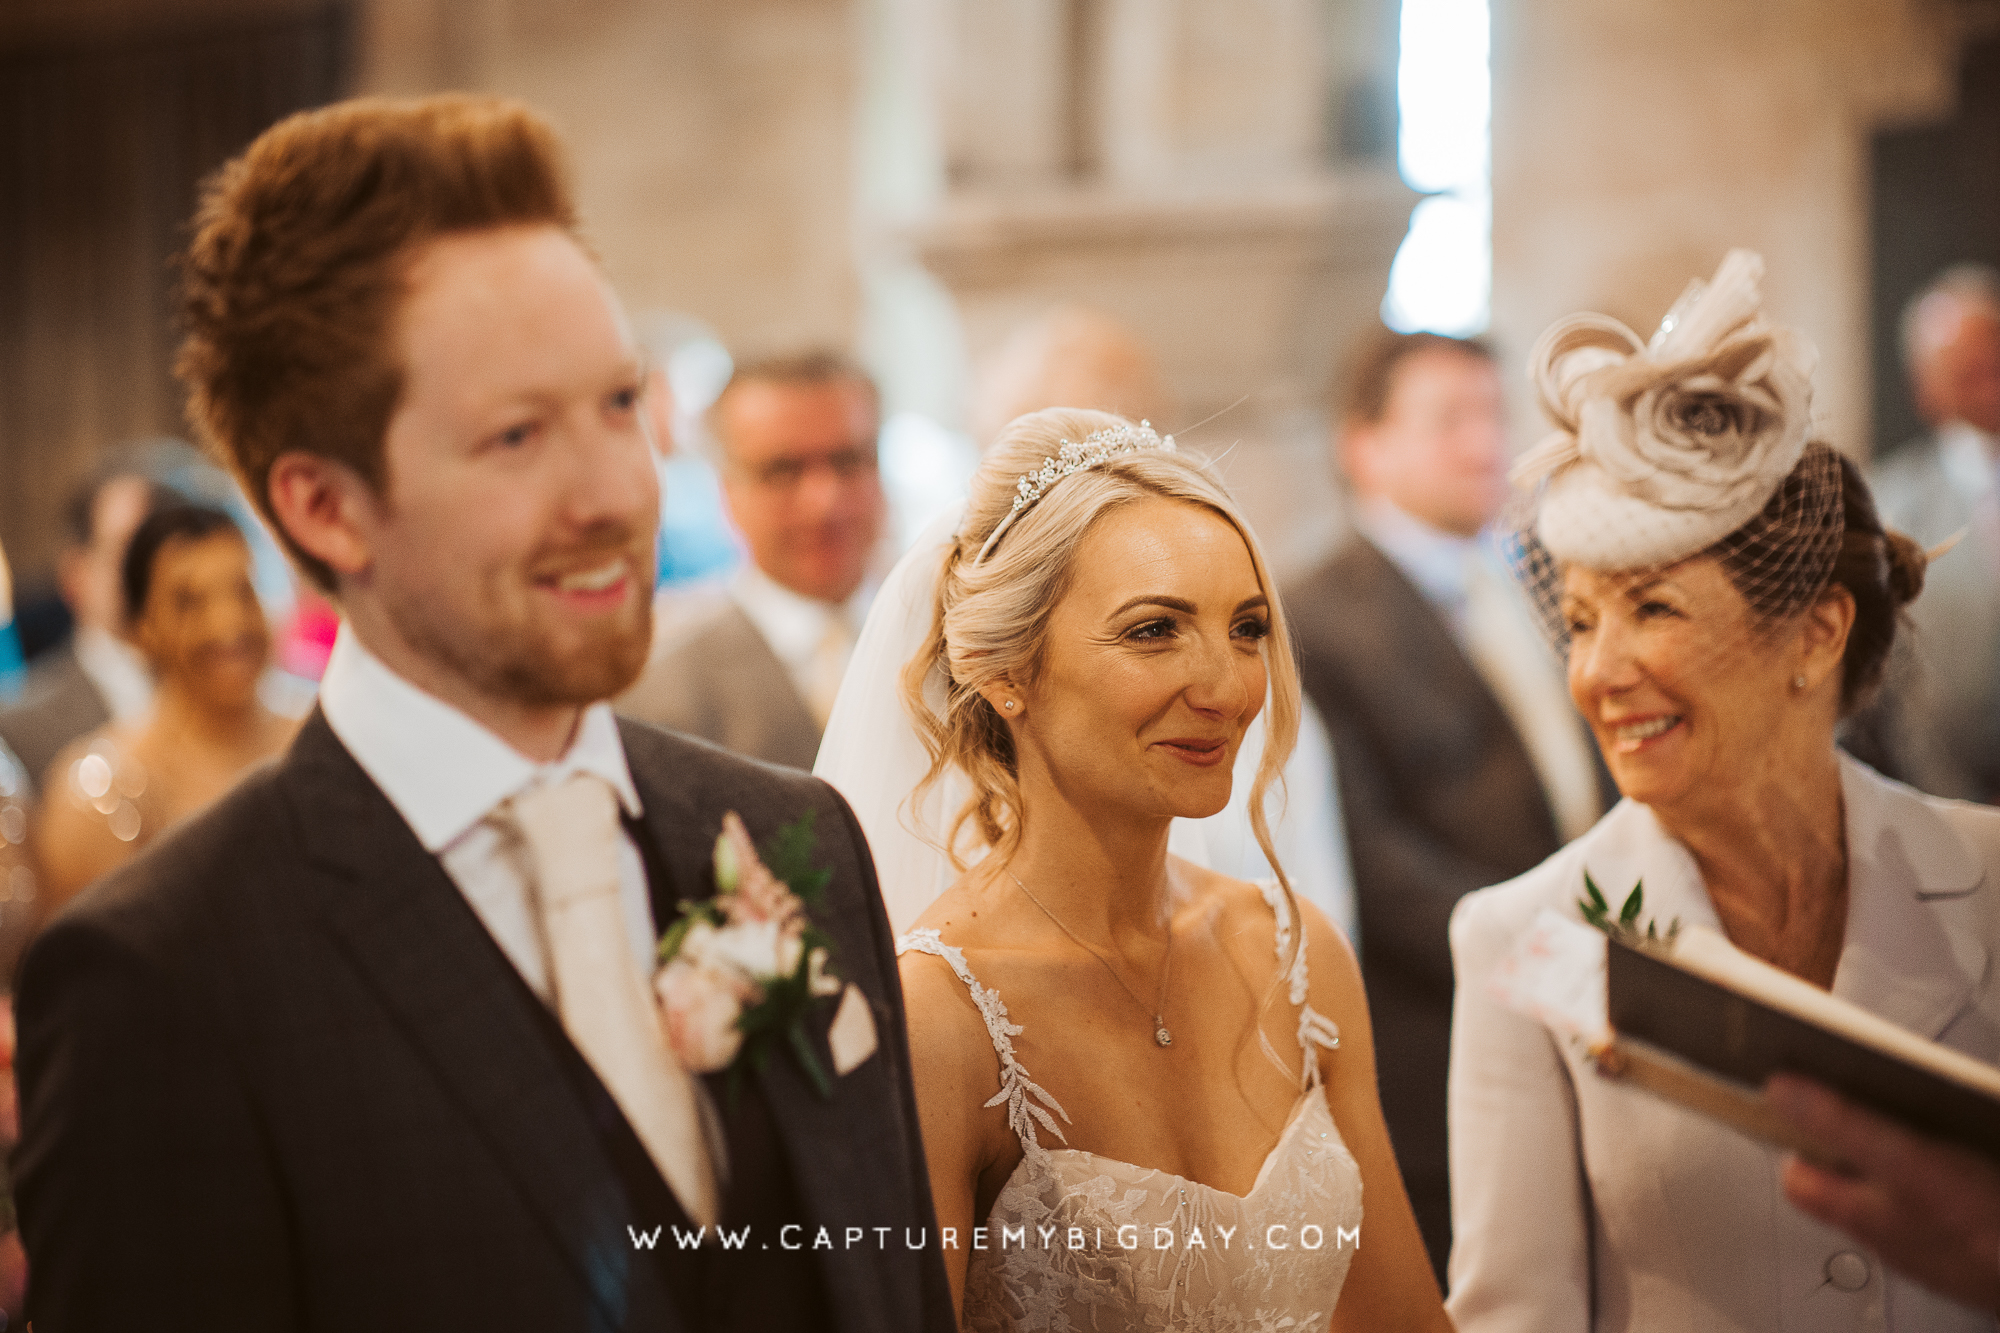 Bride smiling in church with groom